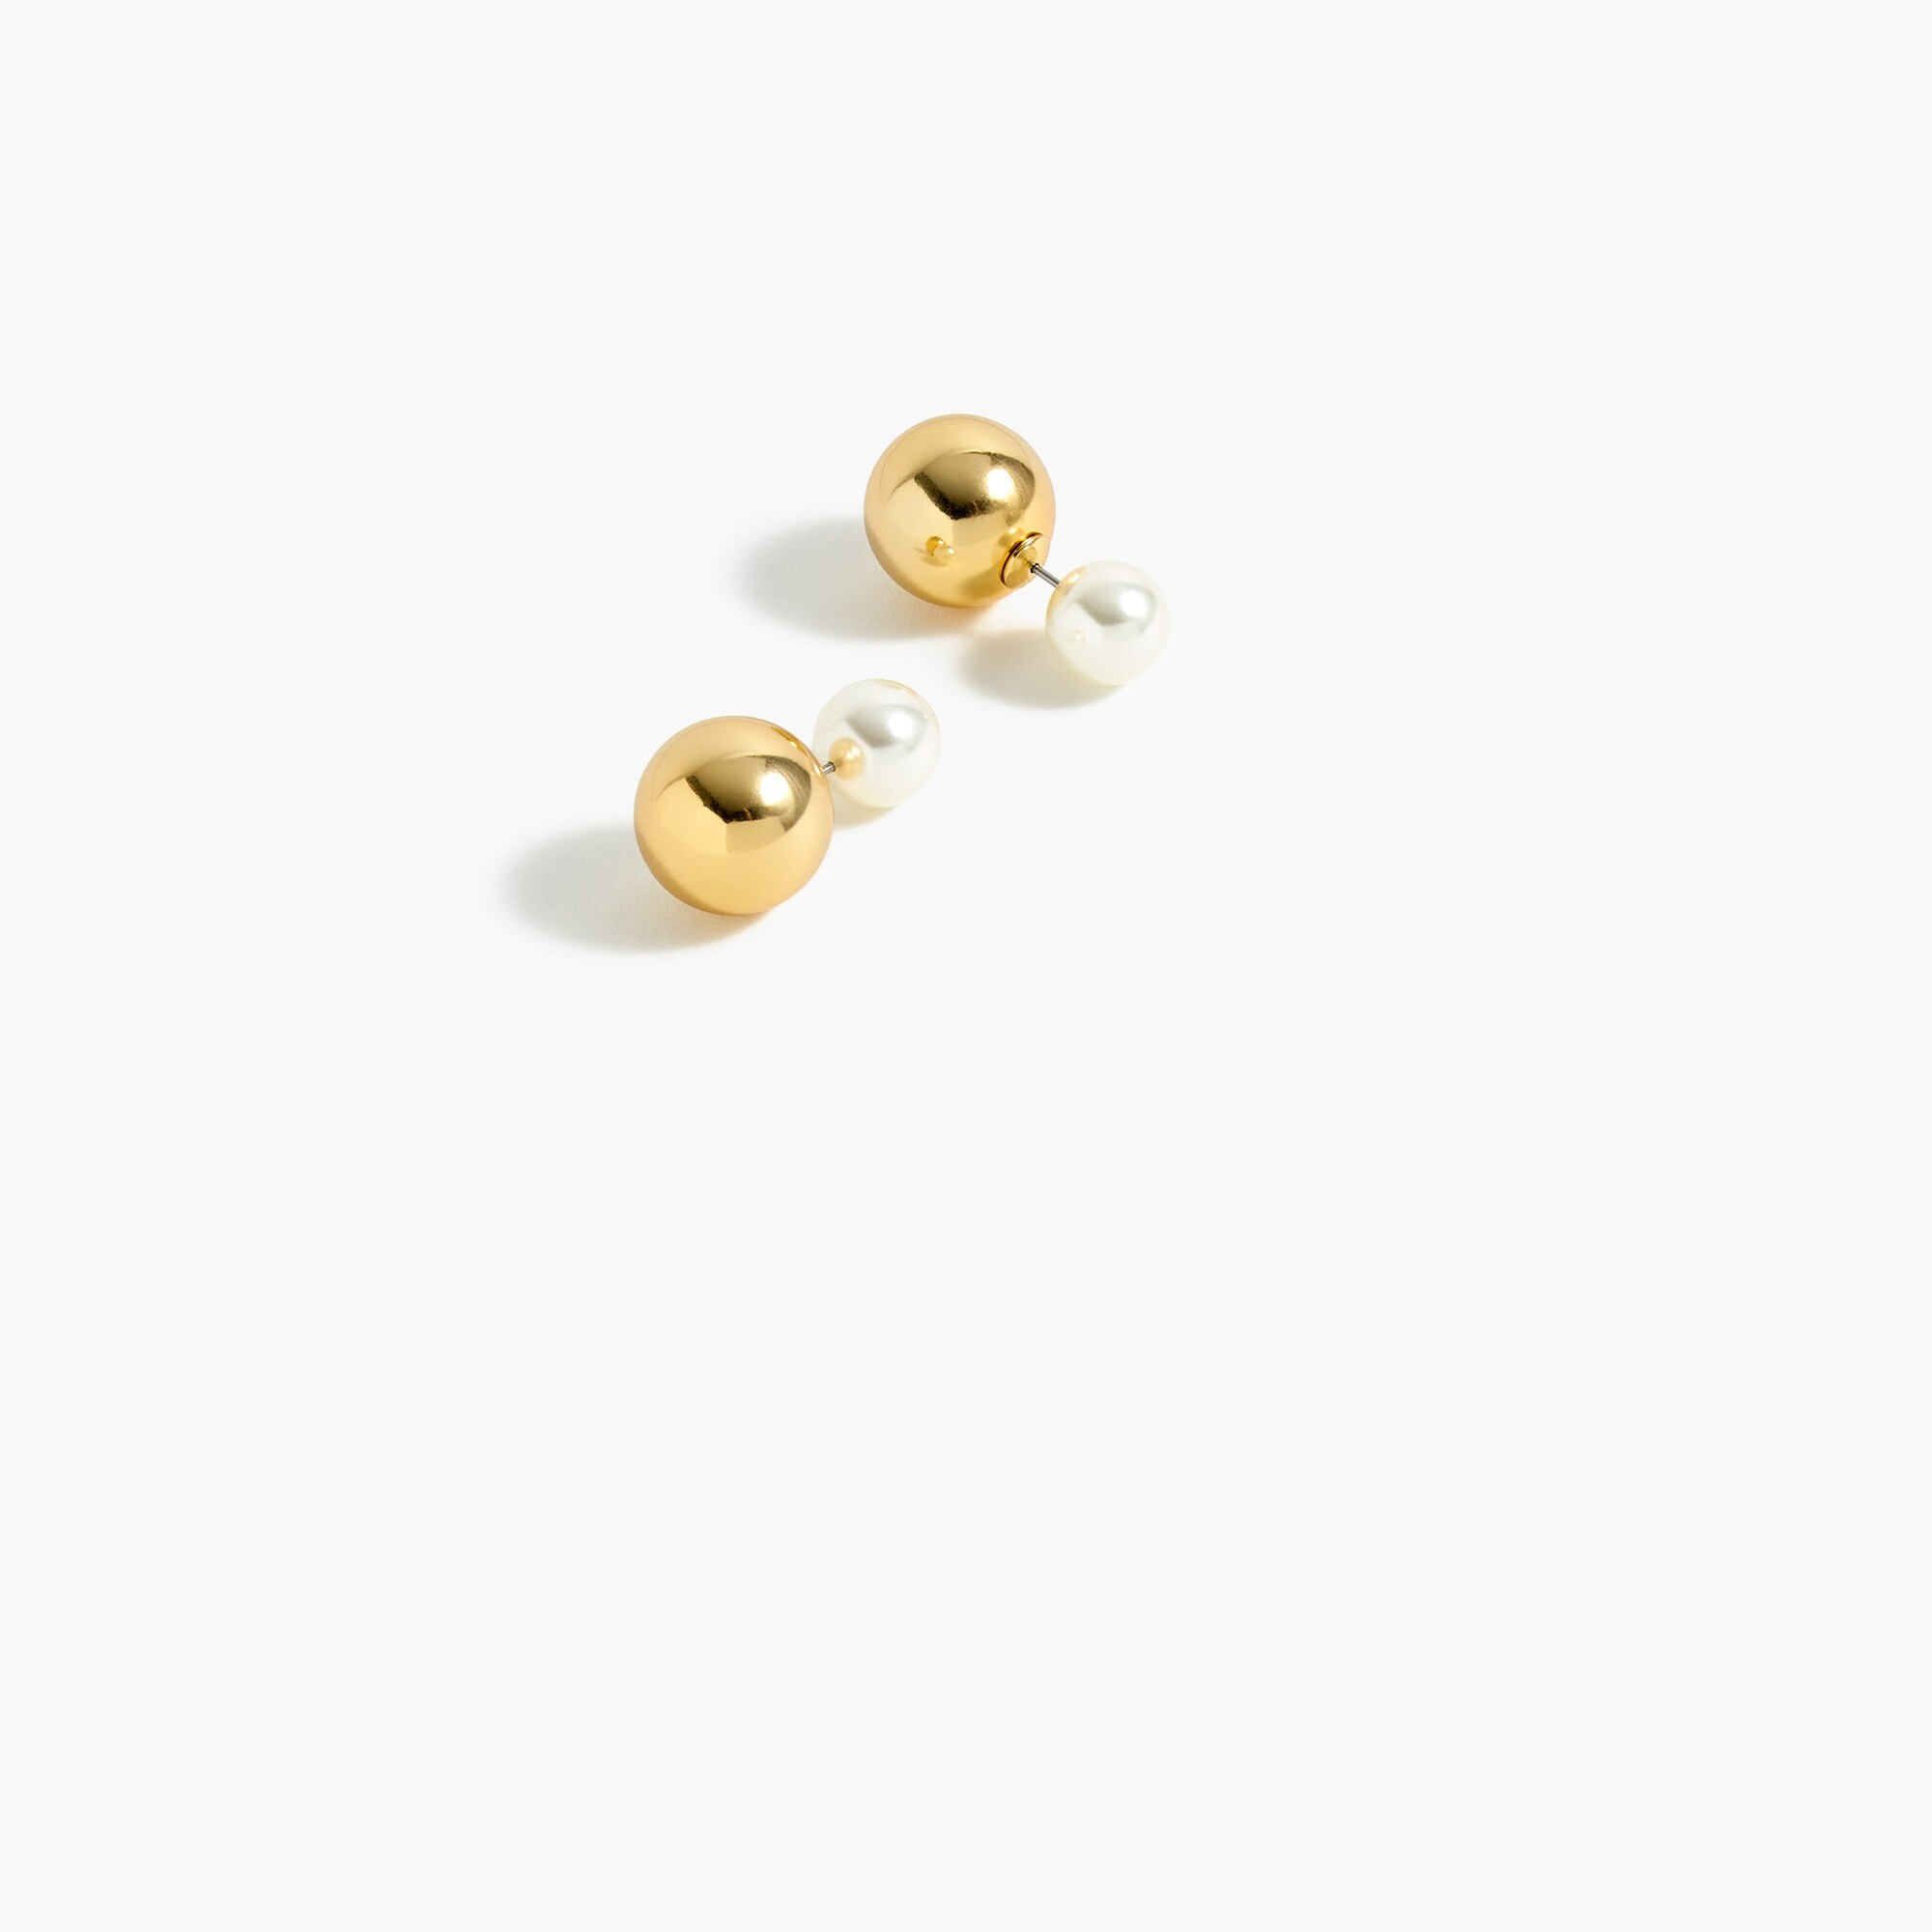 Reversible stud earrings women jewelry c